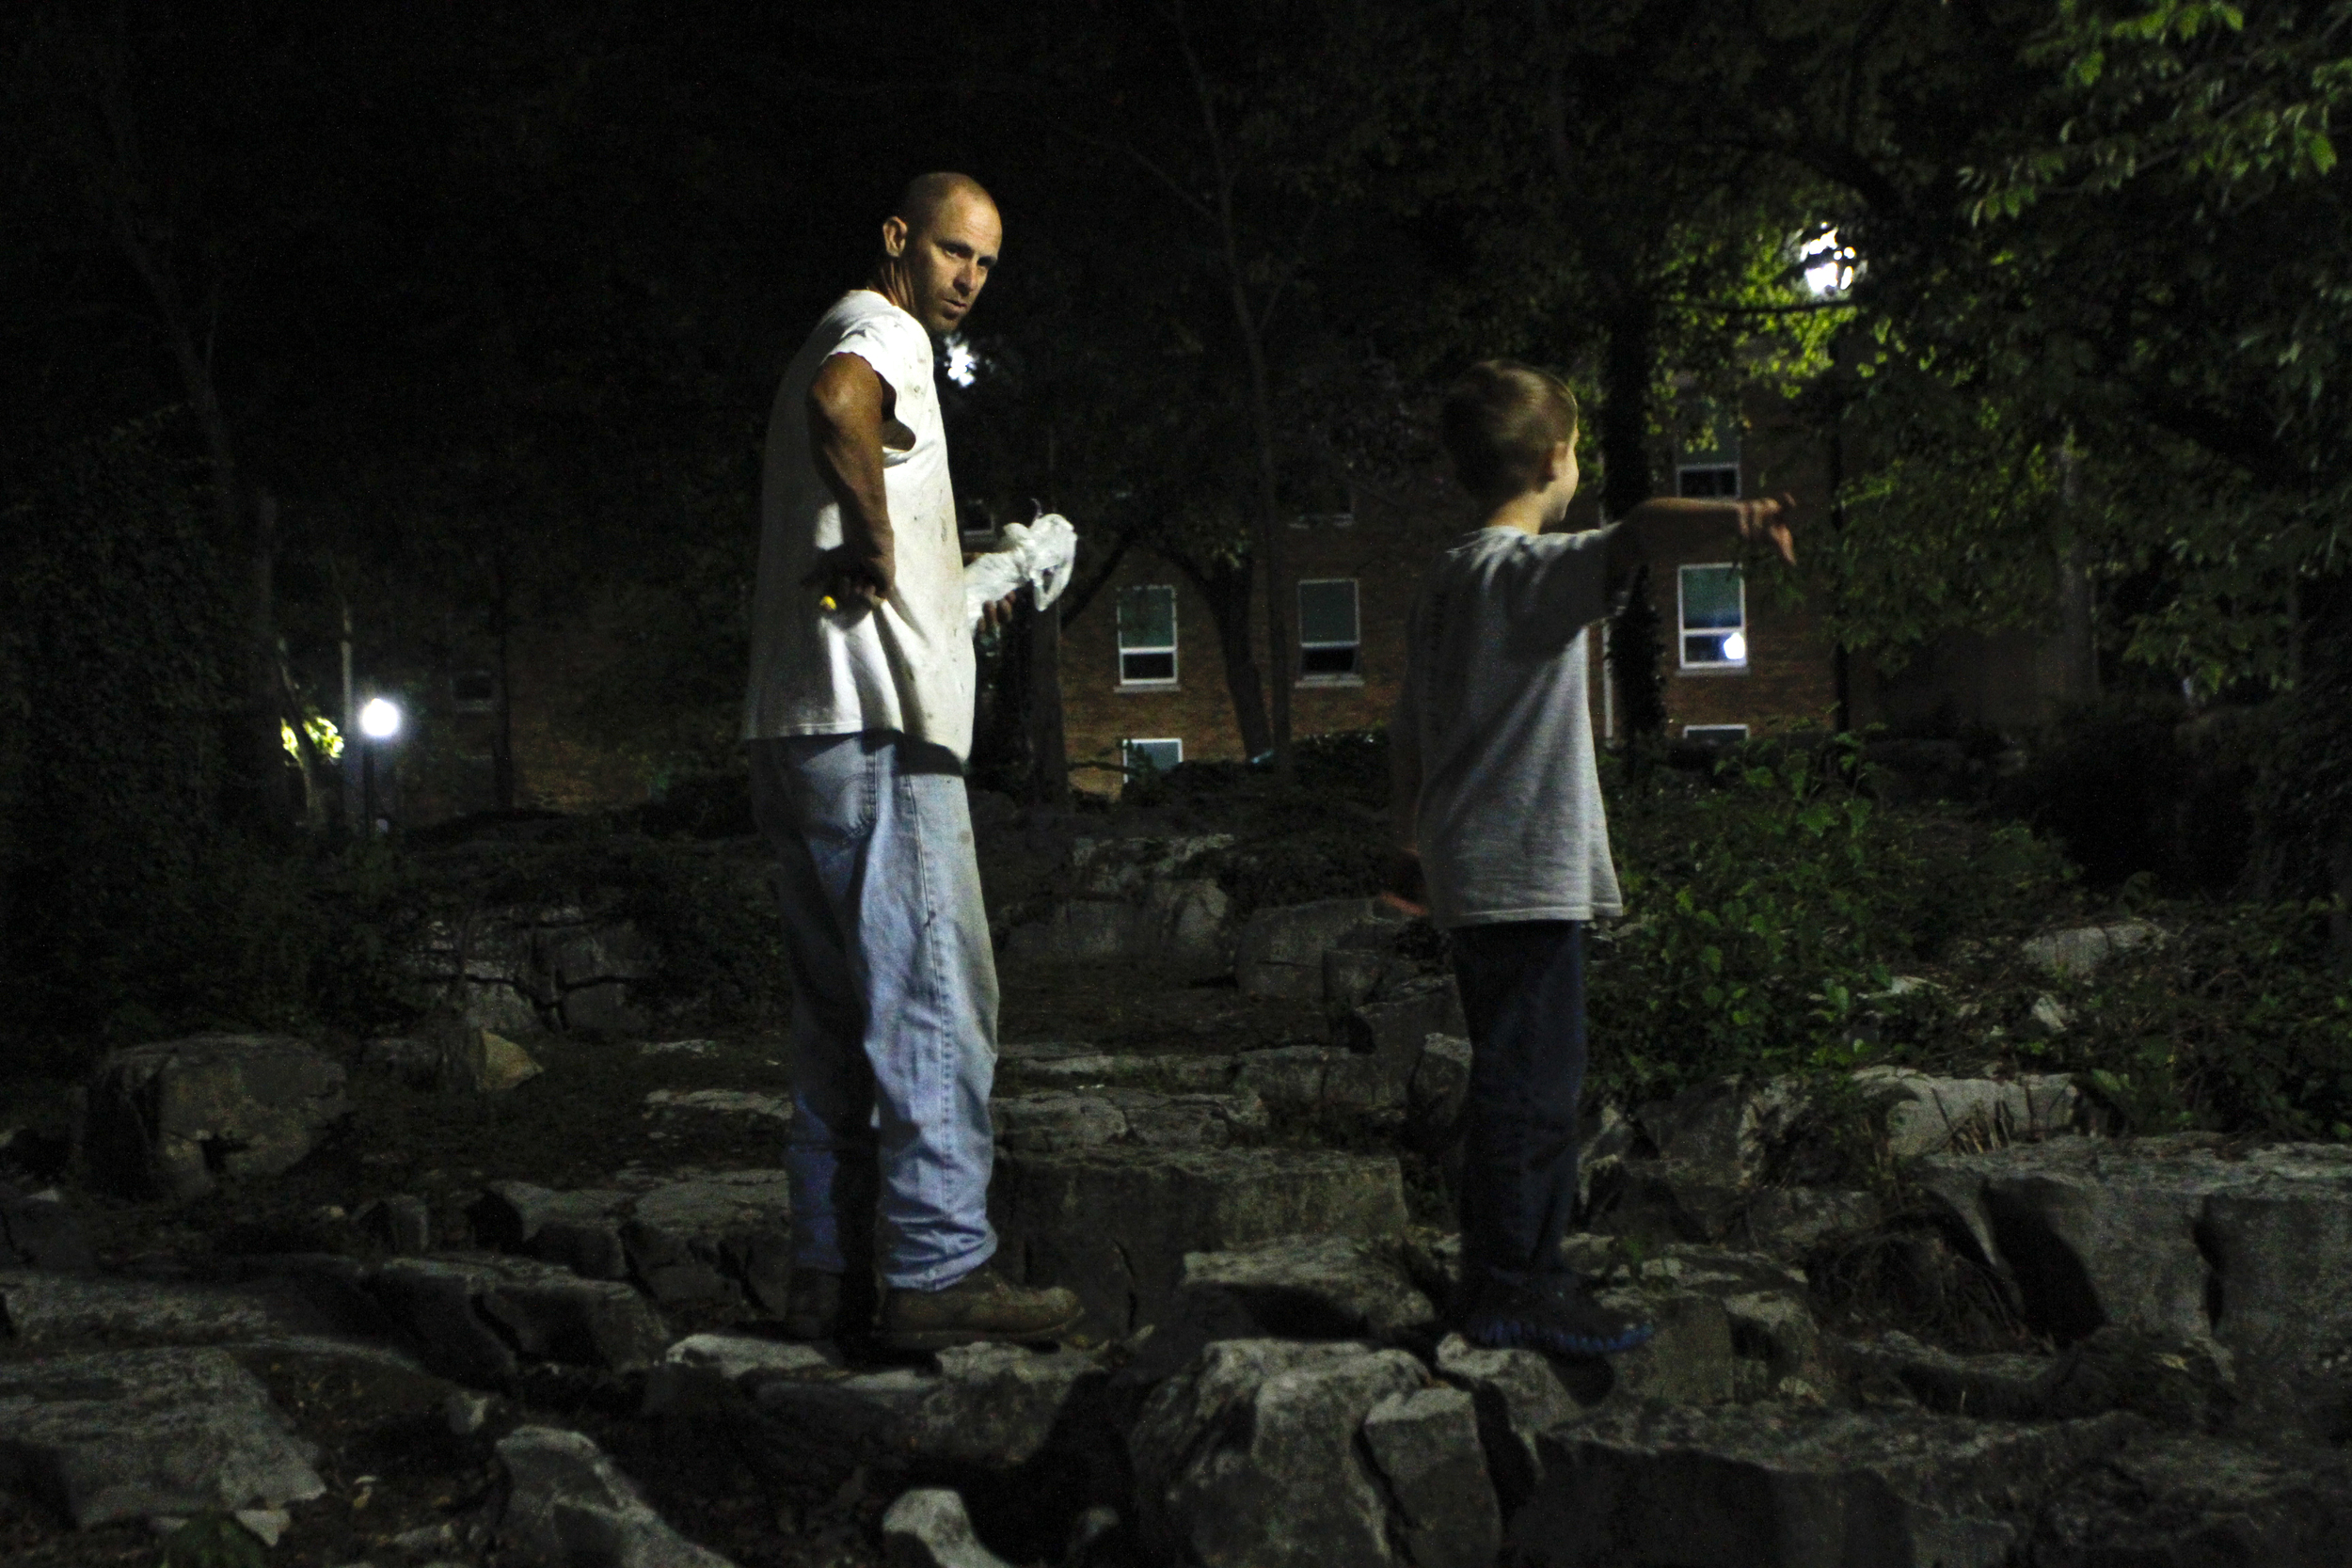 """John Stucy, left, takes his son, Elijah Stucy, 6, on an evening walk around Westerns campus. Stucy shared the locations Civil War history with his son during their walk. """"He's the best thing I've got,"""" Stucy said about his son."""